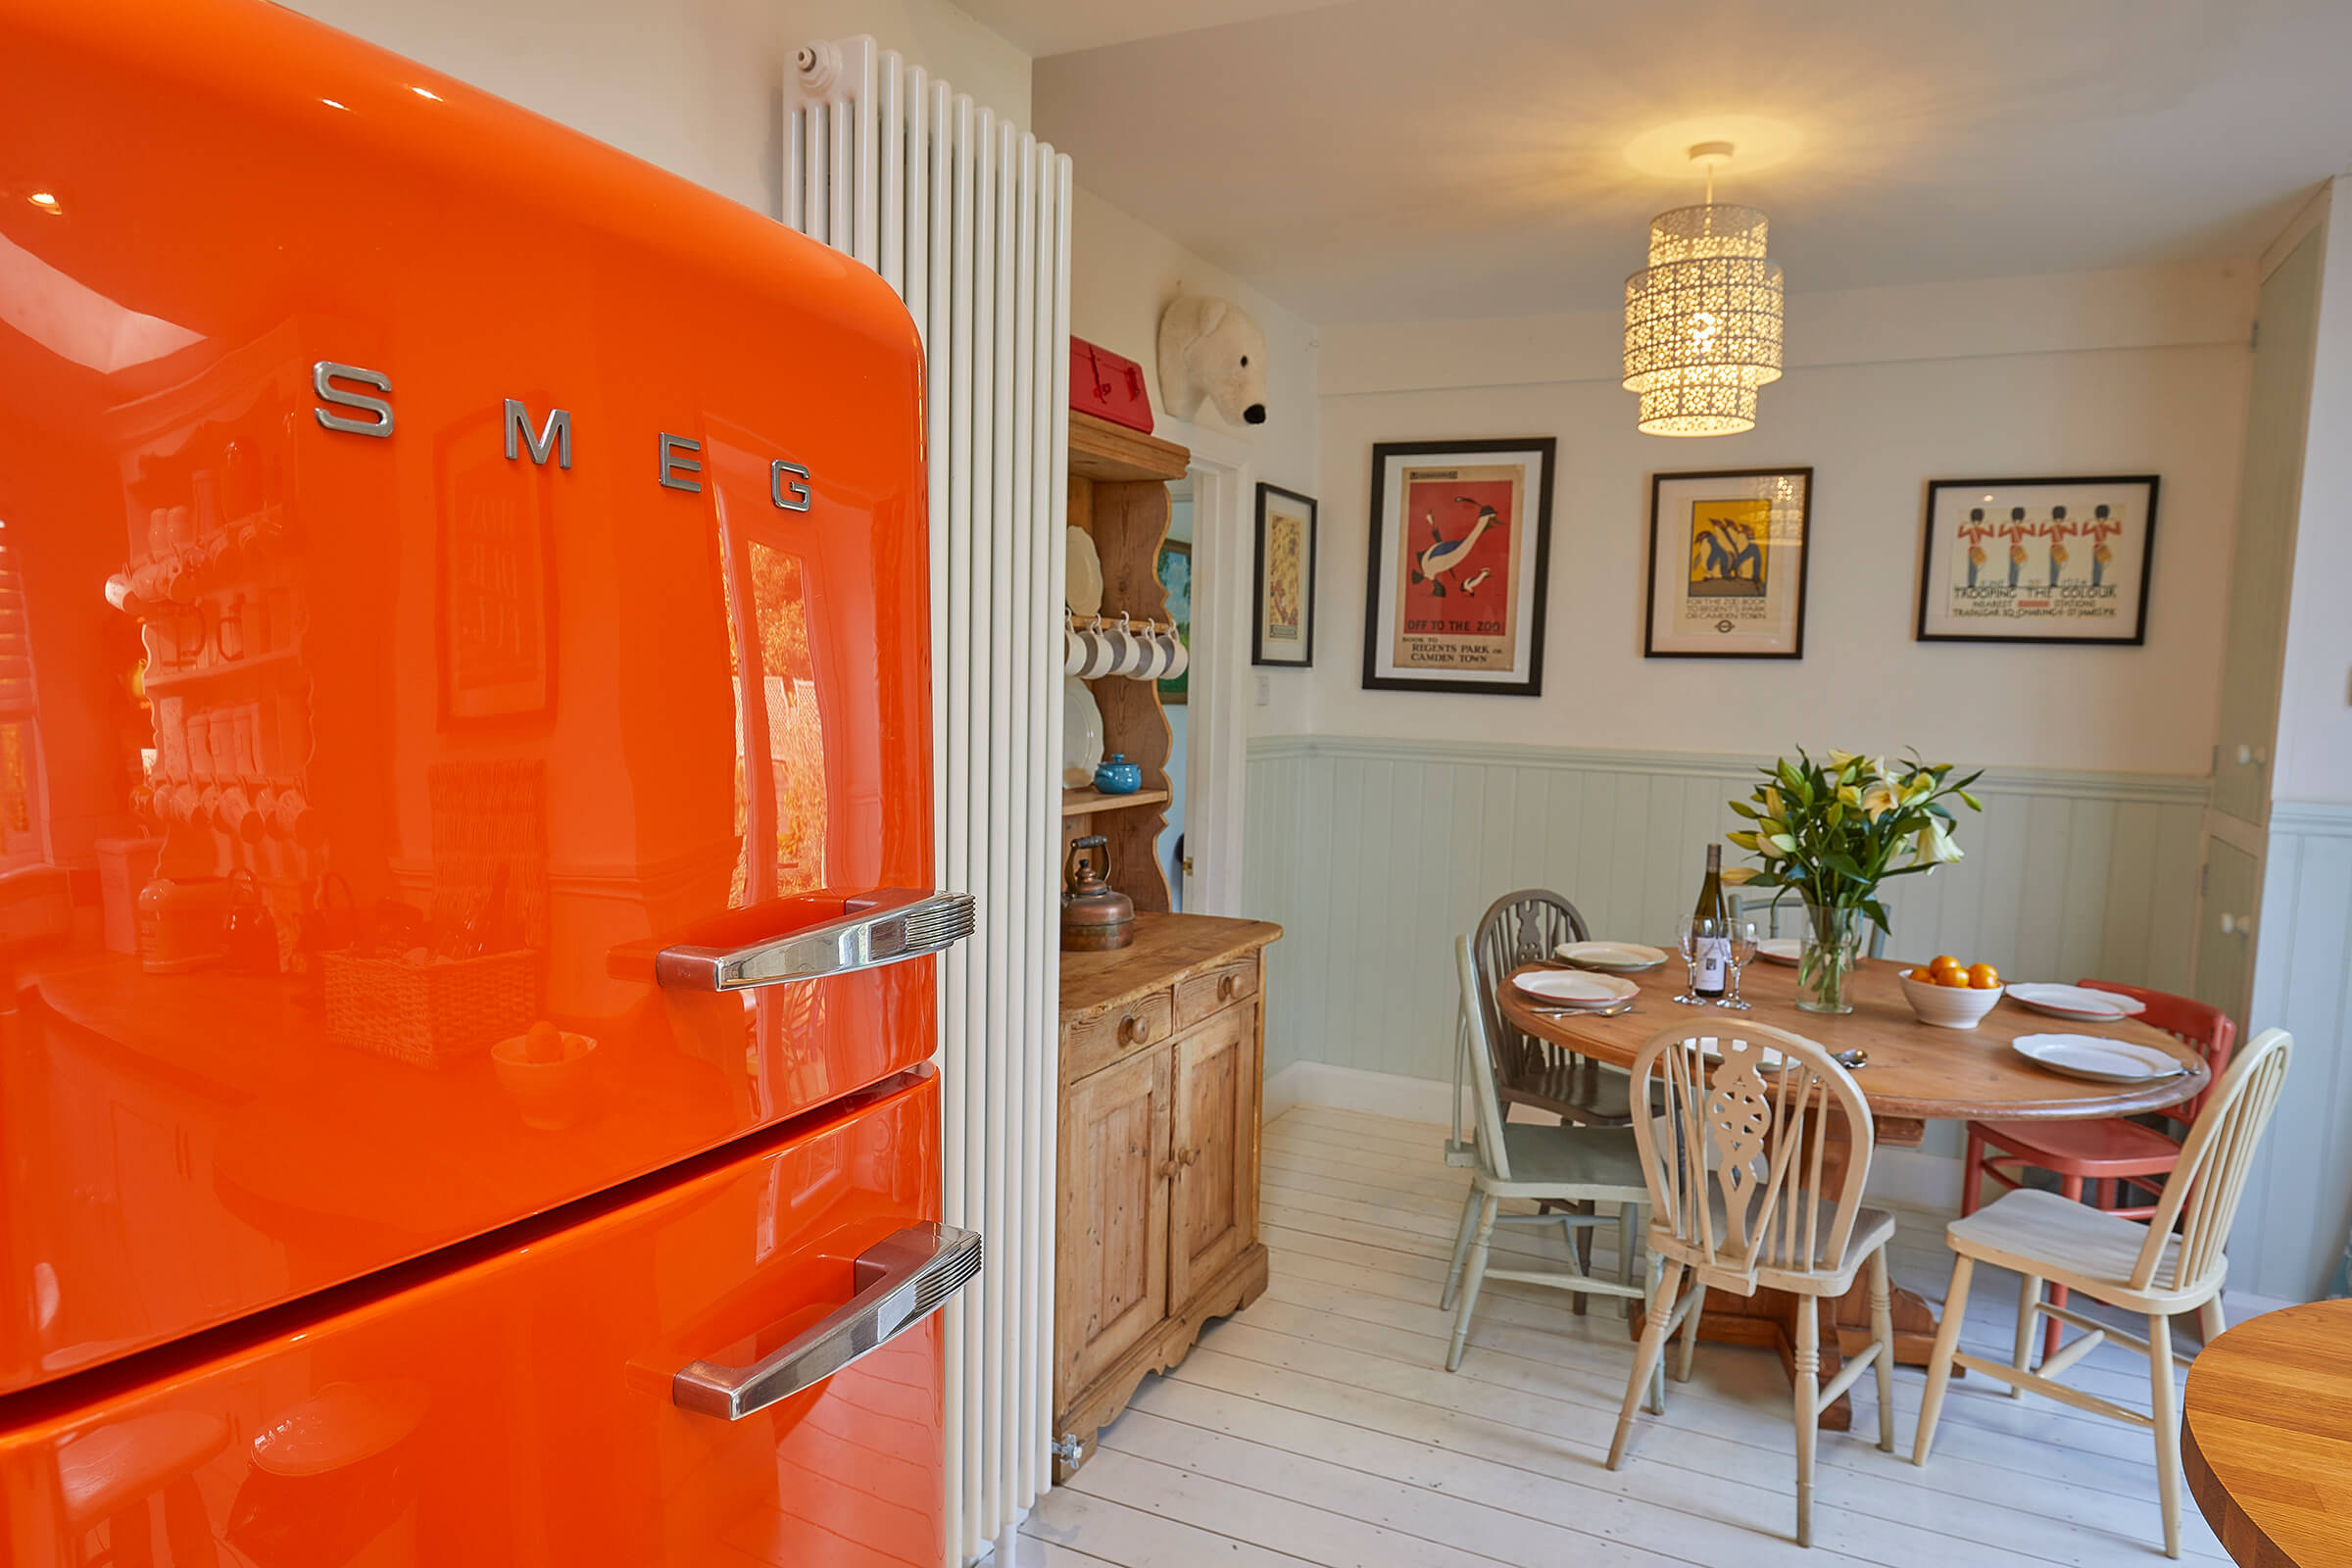 Hollies House - Light and spacious property with pops of colour